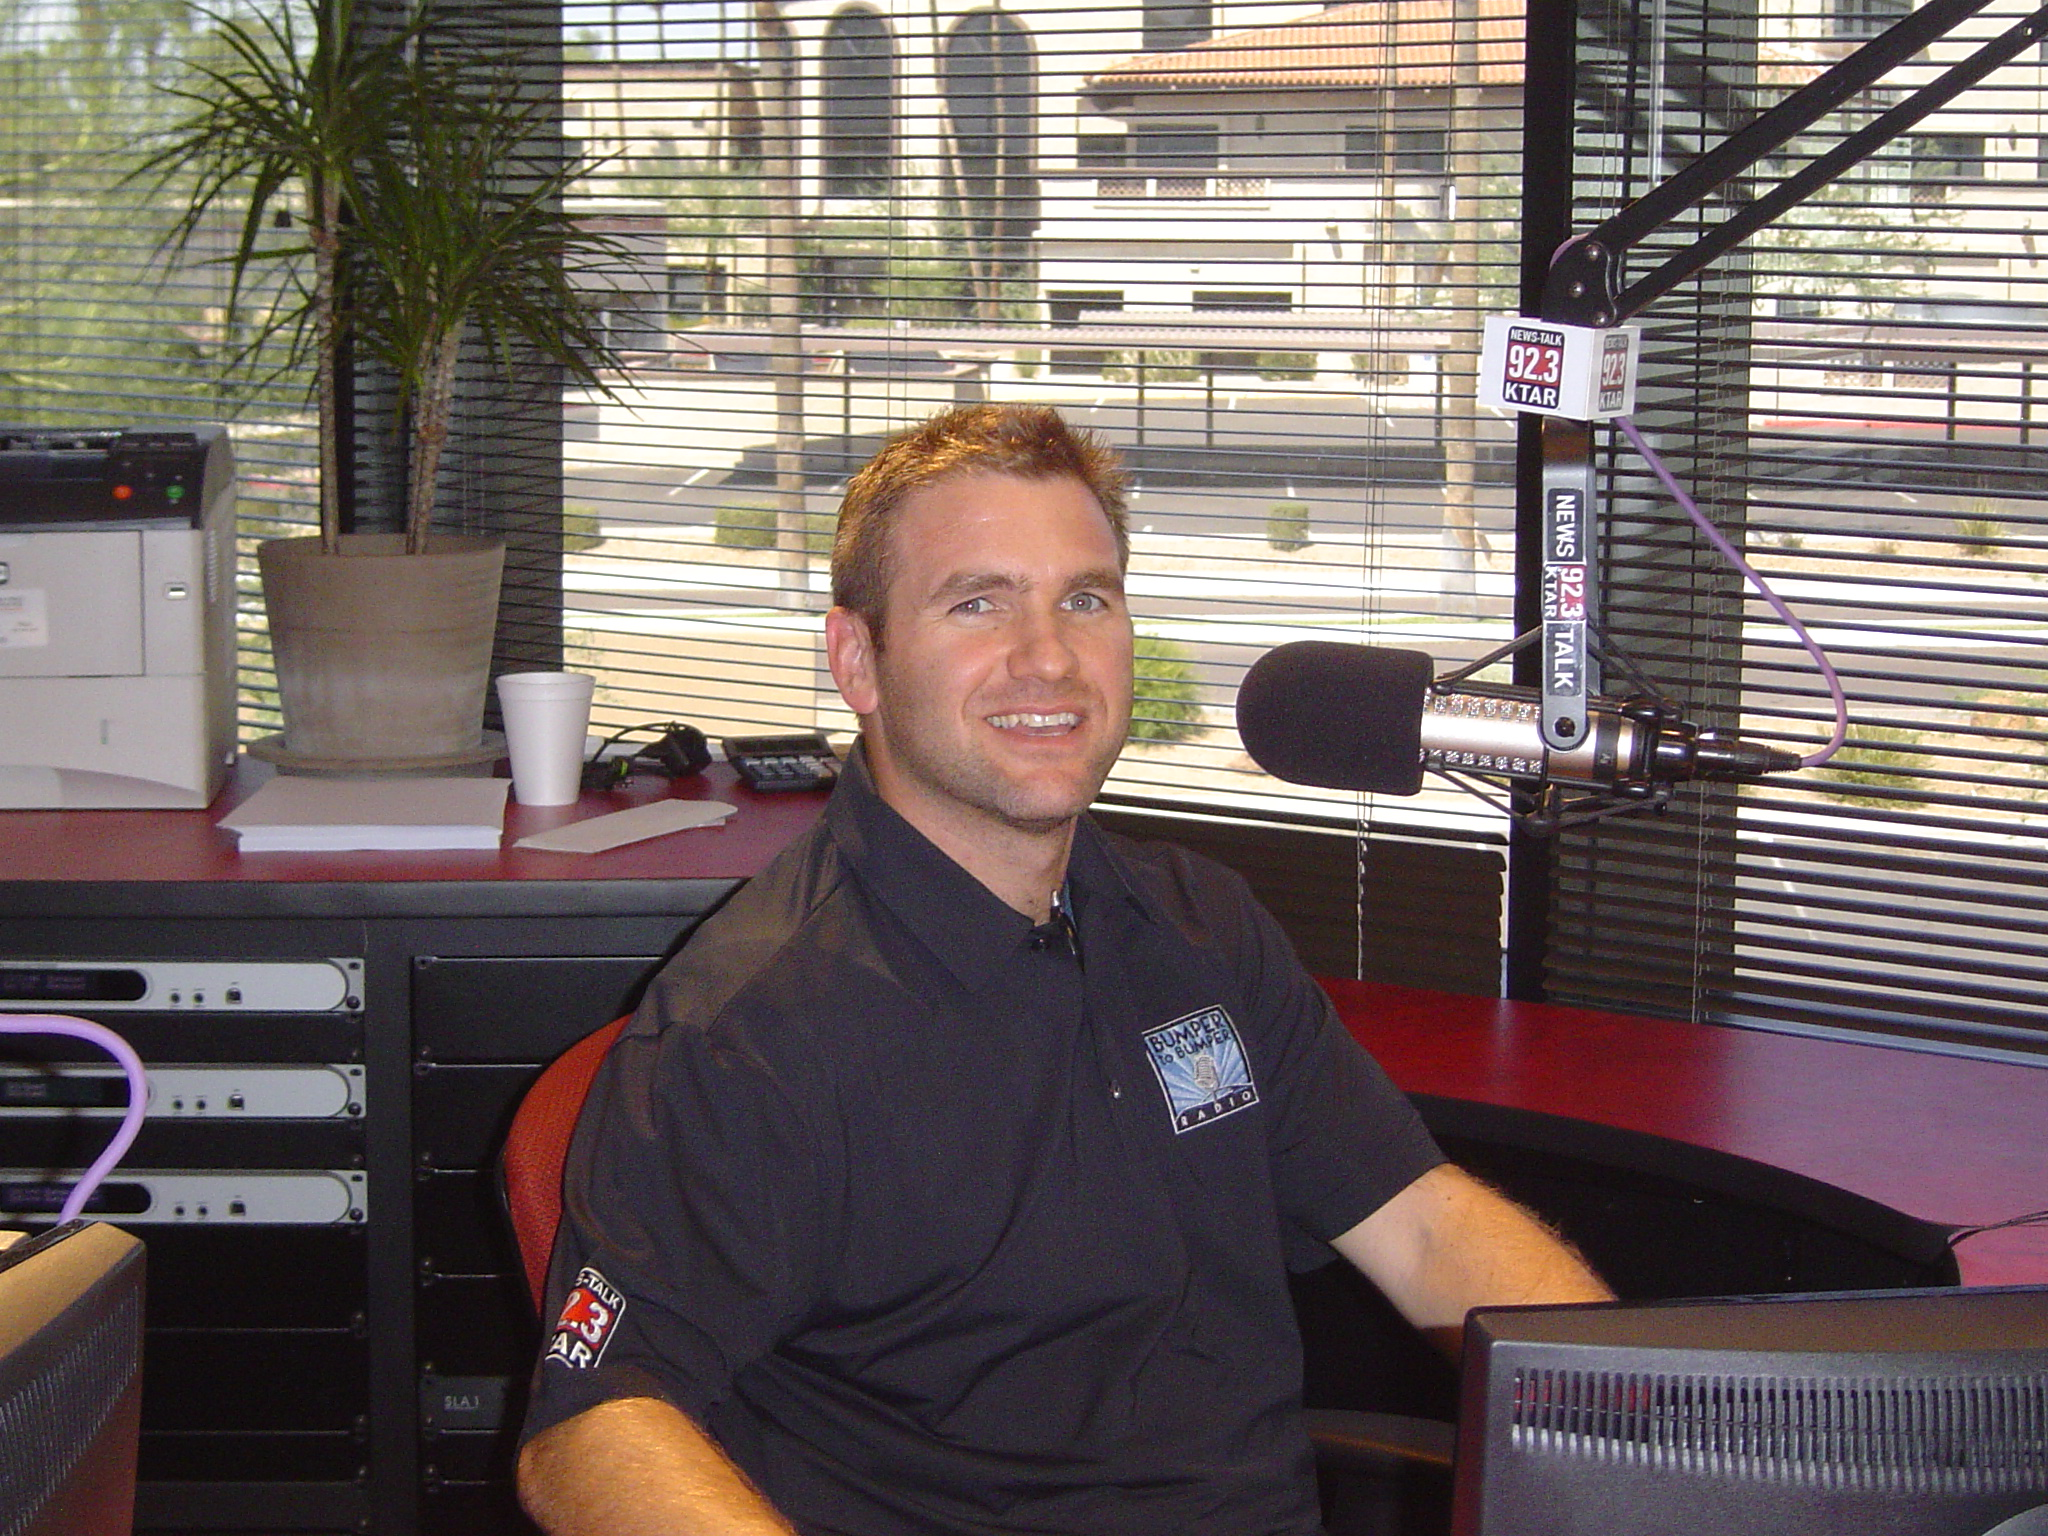 Dave Riccio, Owner of Tri-City Transmission in Tempe, Arizona